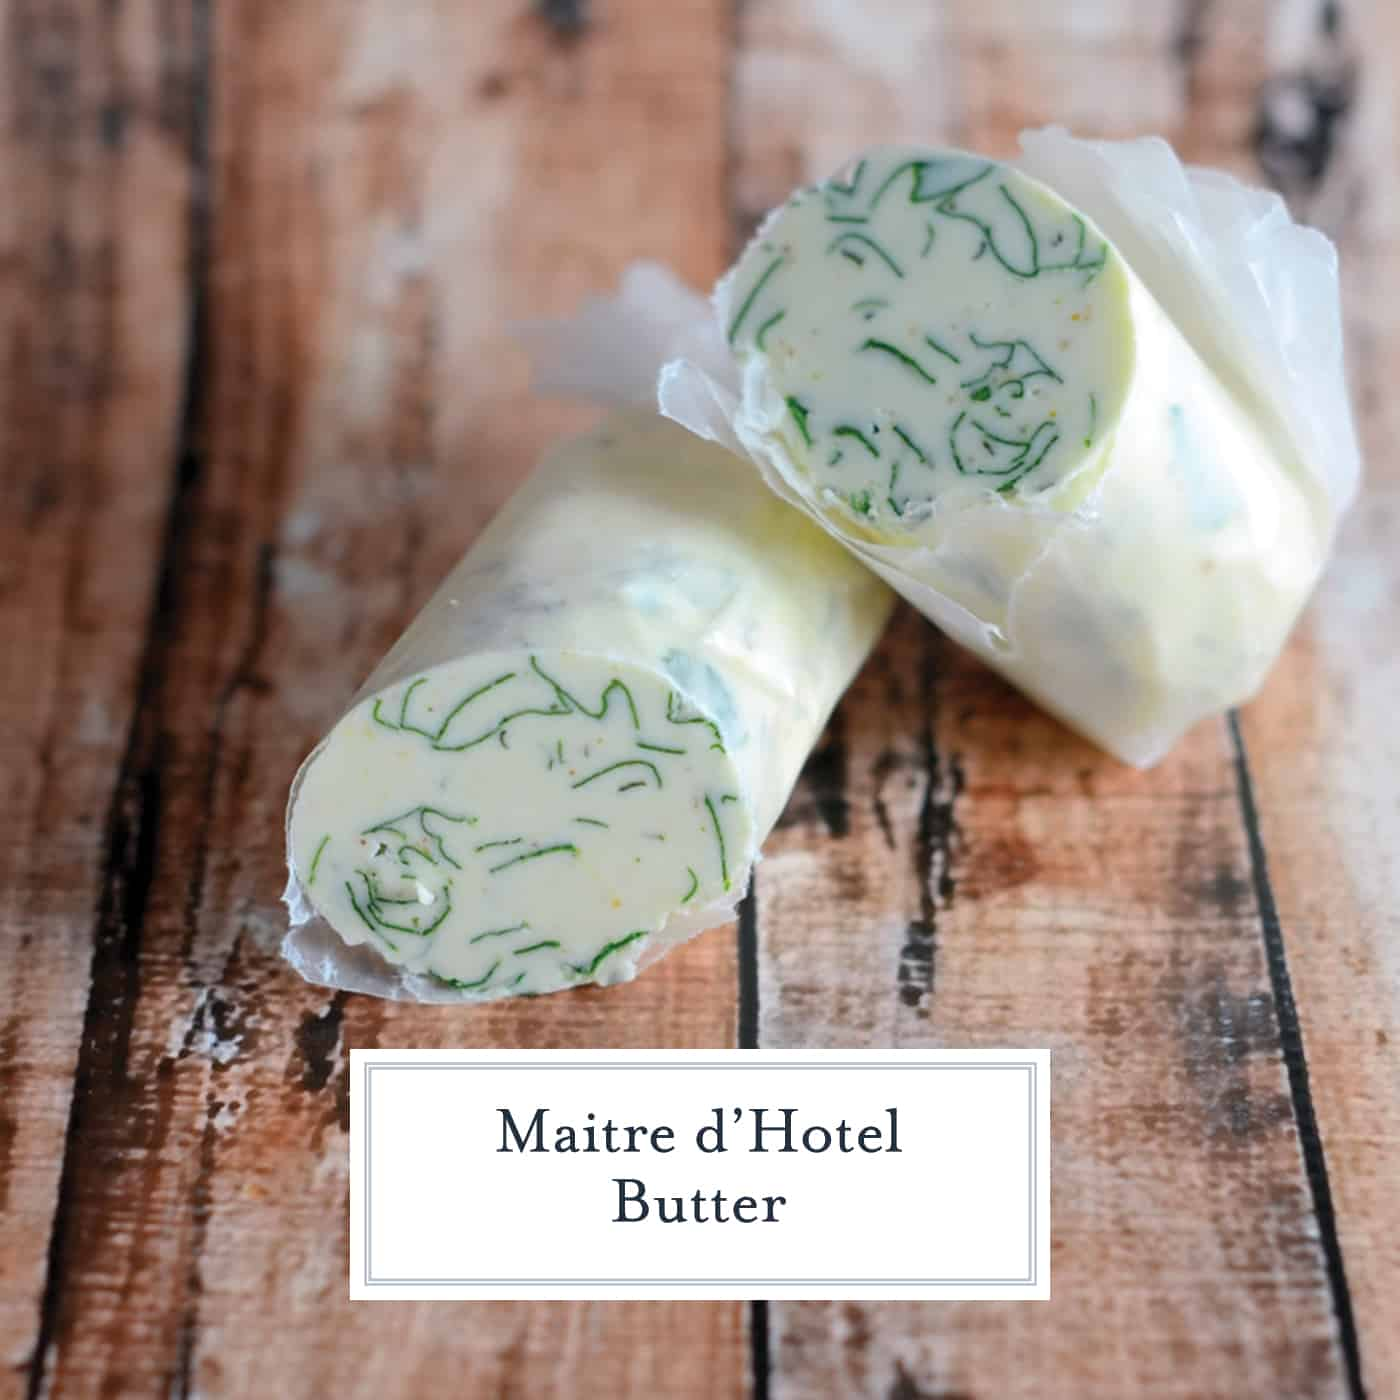 Maitre d'Hotel Butter is a simple compound butter recipe that elevates food with basic flavors: lemon, parsley and mustard. Use it as a finishing butter on meats and vegetables for added pizzazz. #compoundbutter #flavoredbutter www.savoryexperiments.com